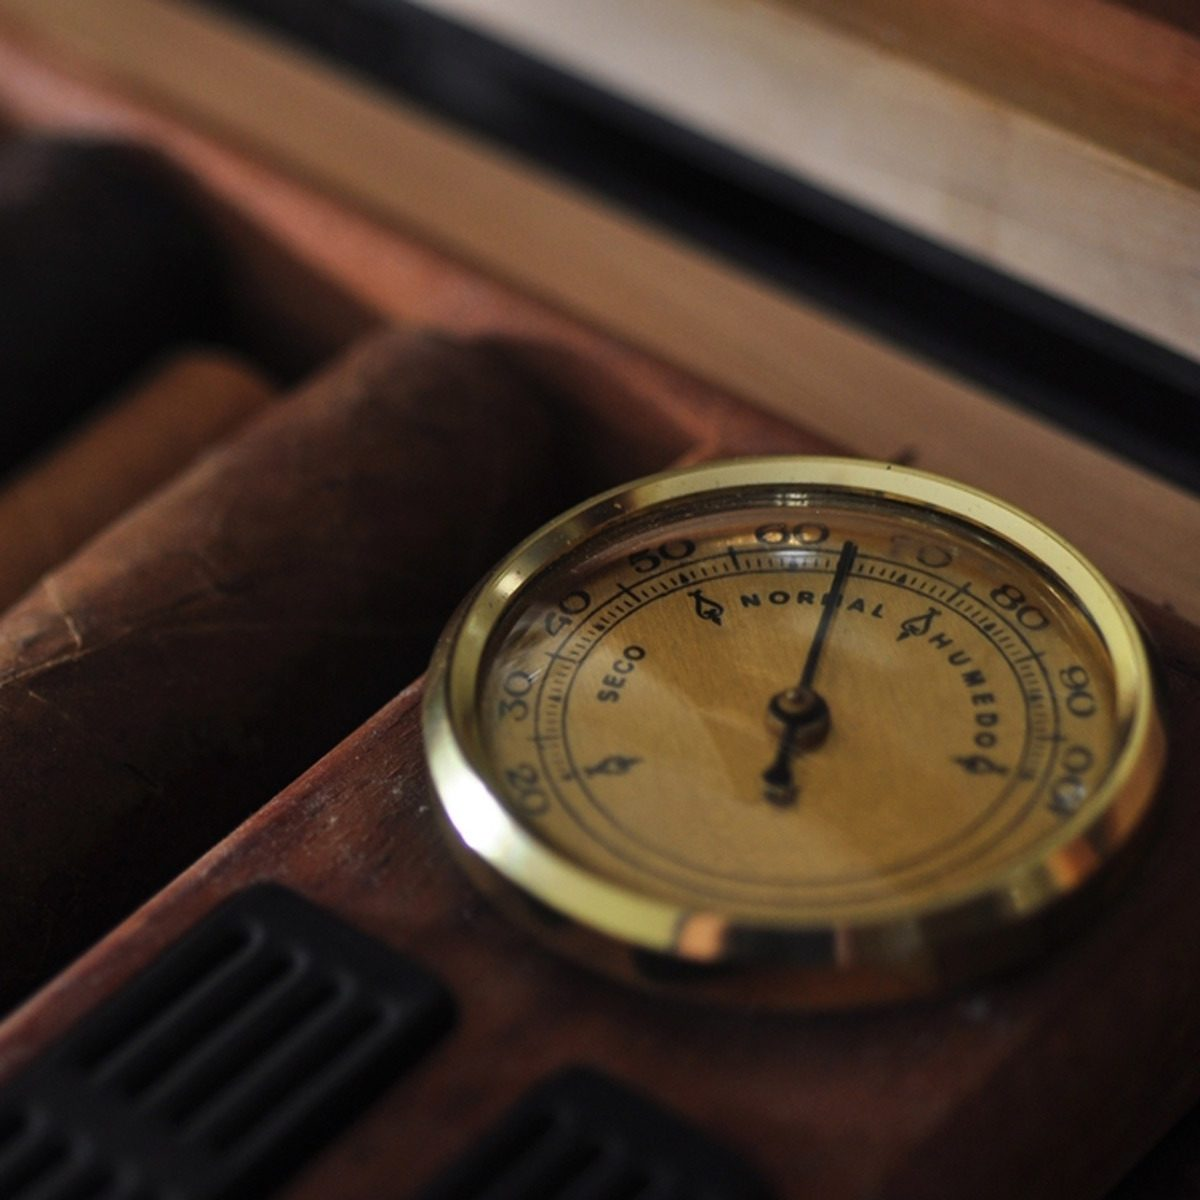 Treat Yourself with a Humidor